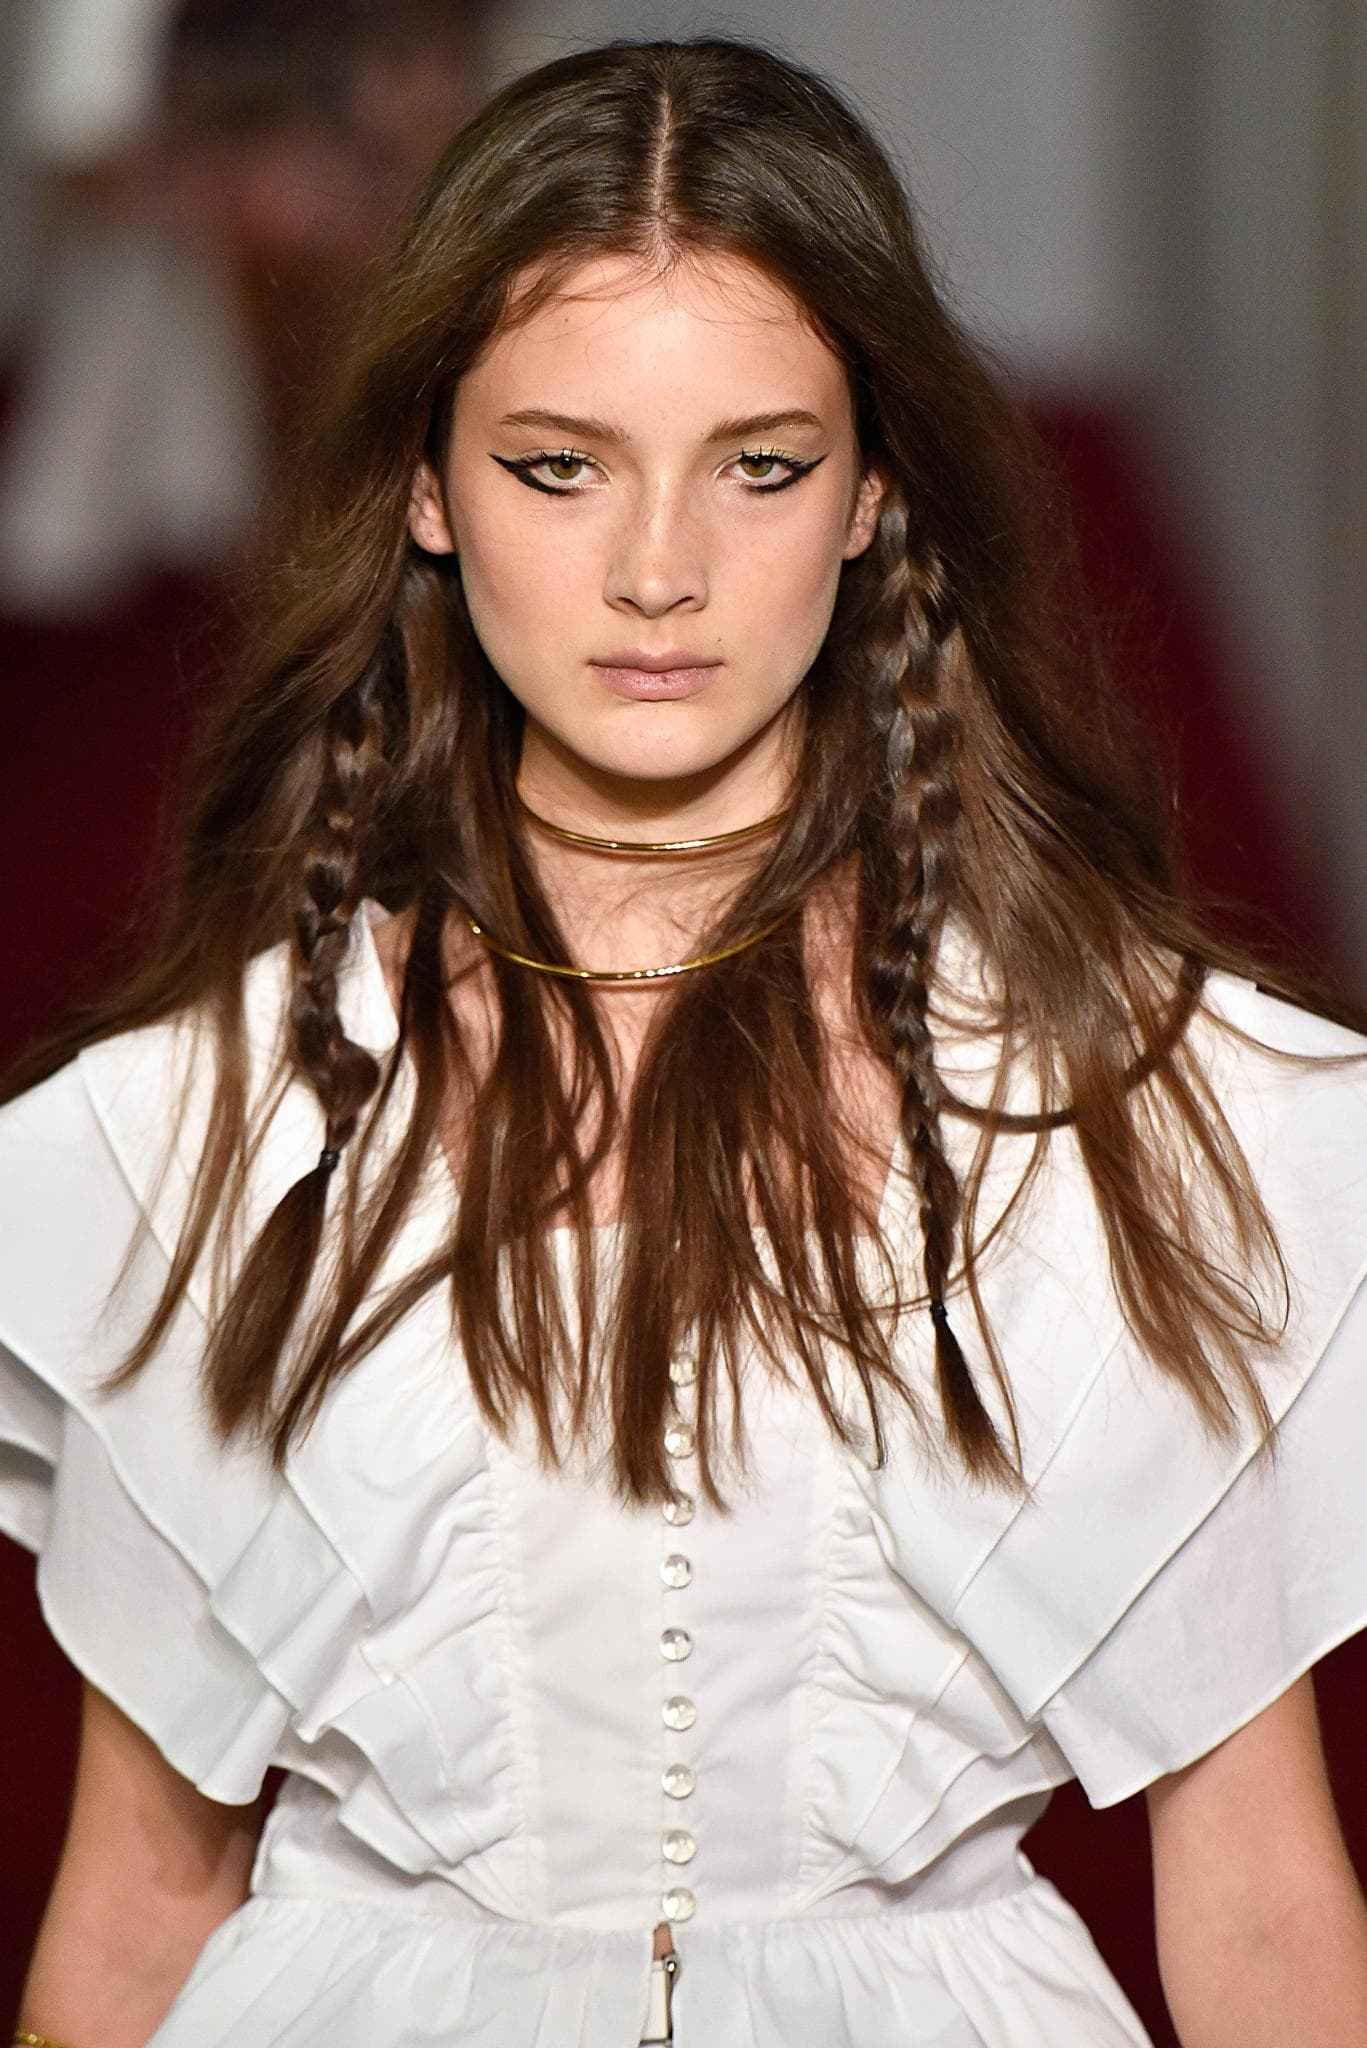 New The Hairstyles From New York Fashion Week All Things Ideas With Pictures